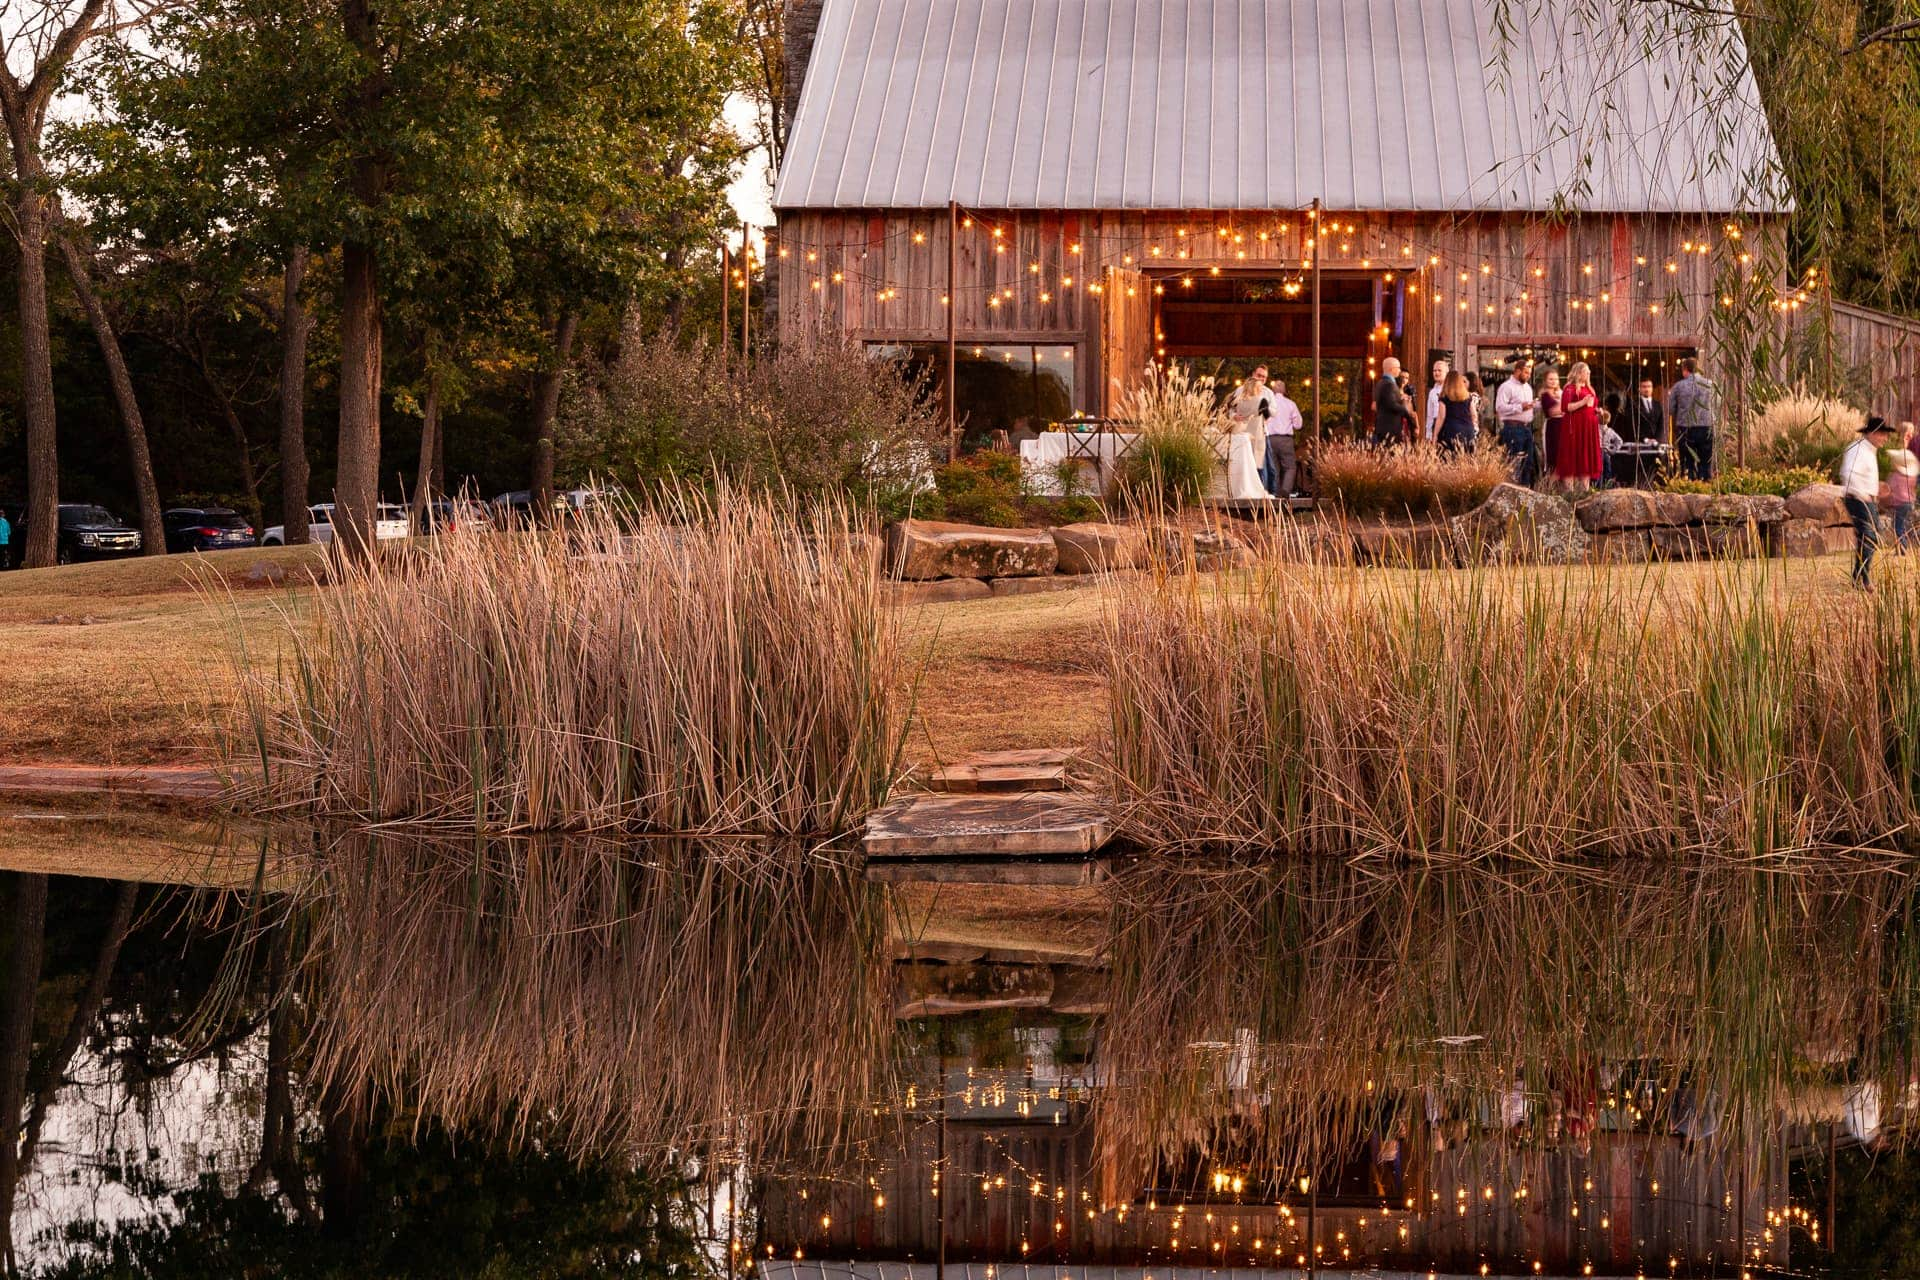 What Should a Wedding Venue Include?